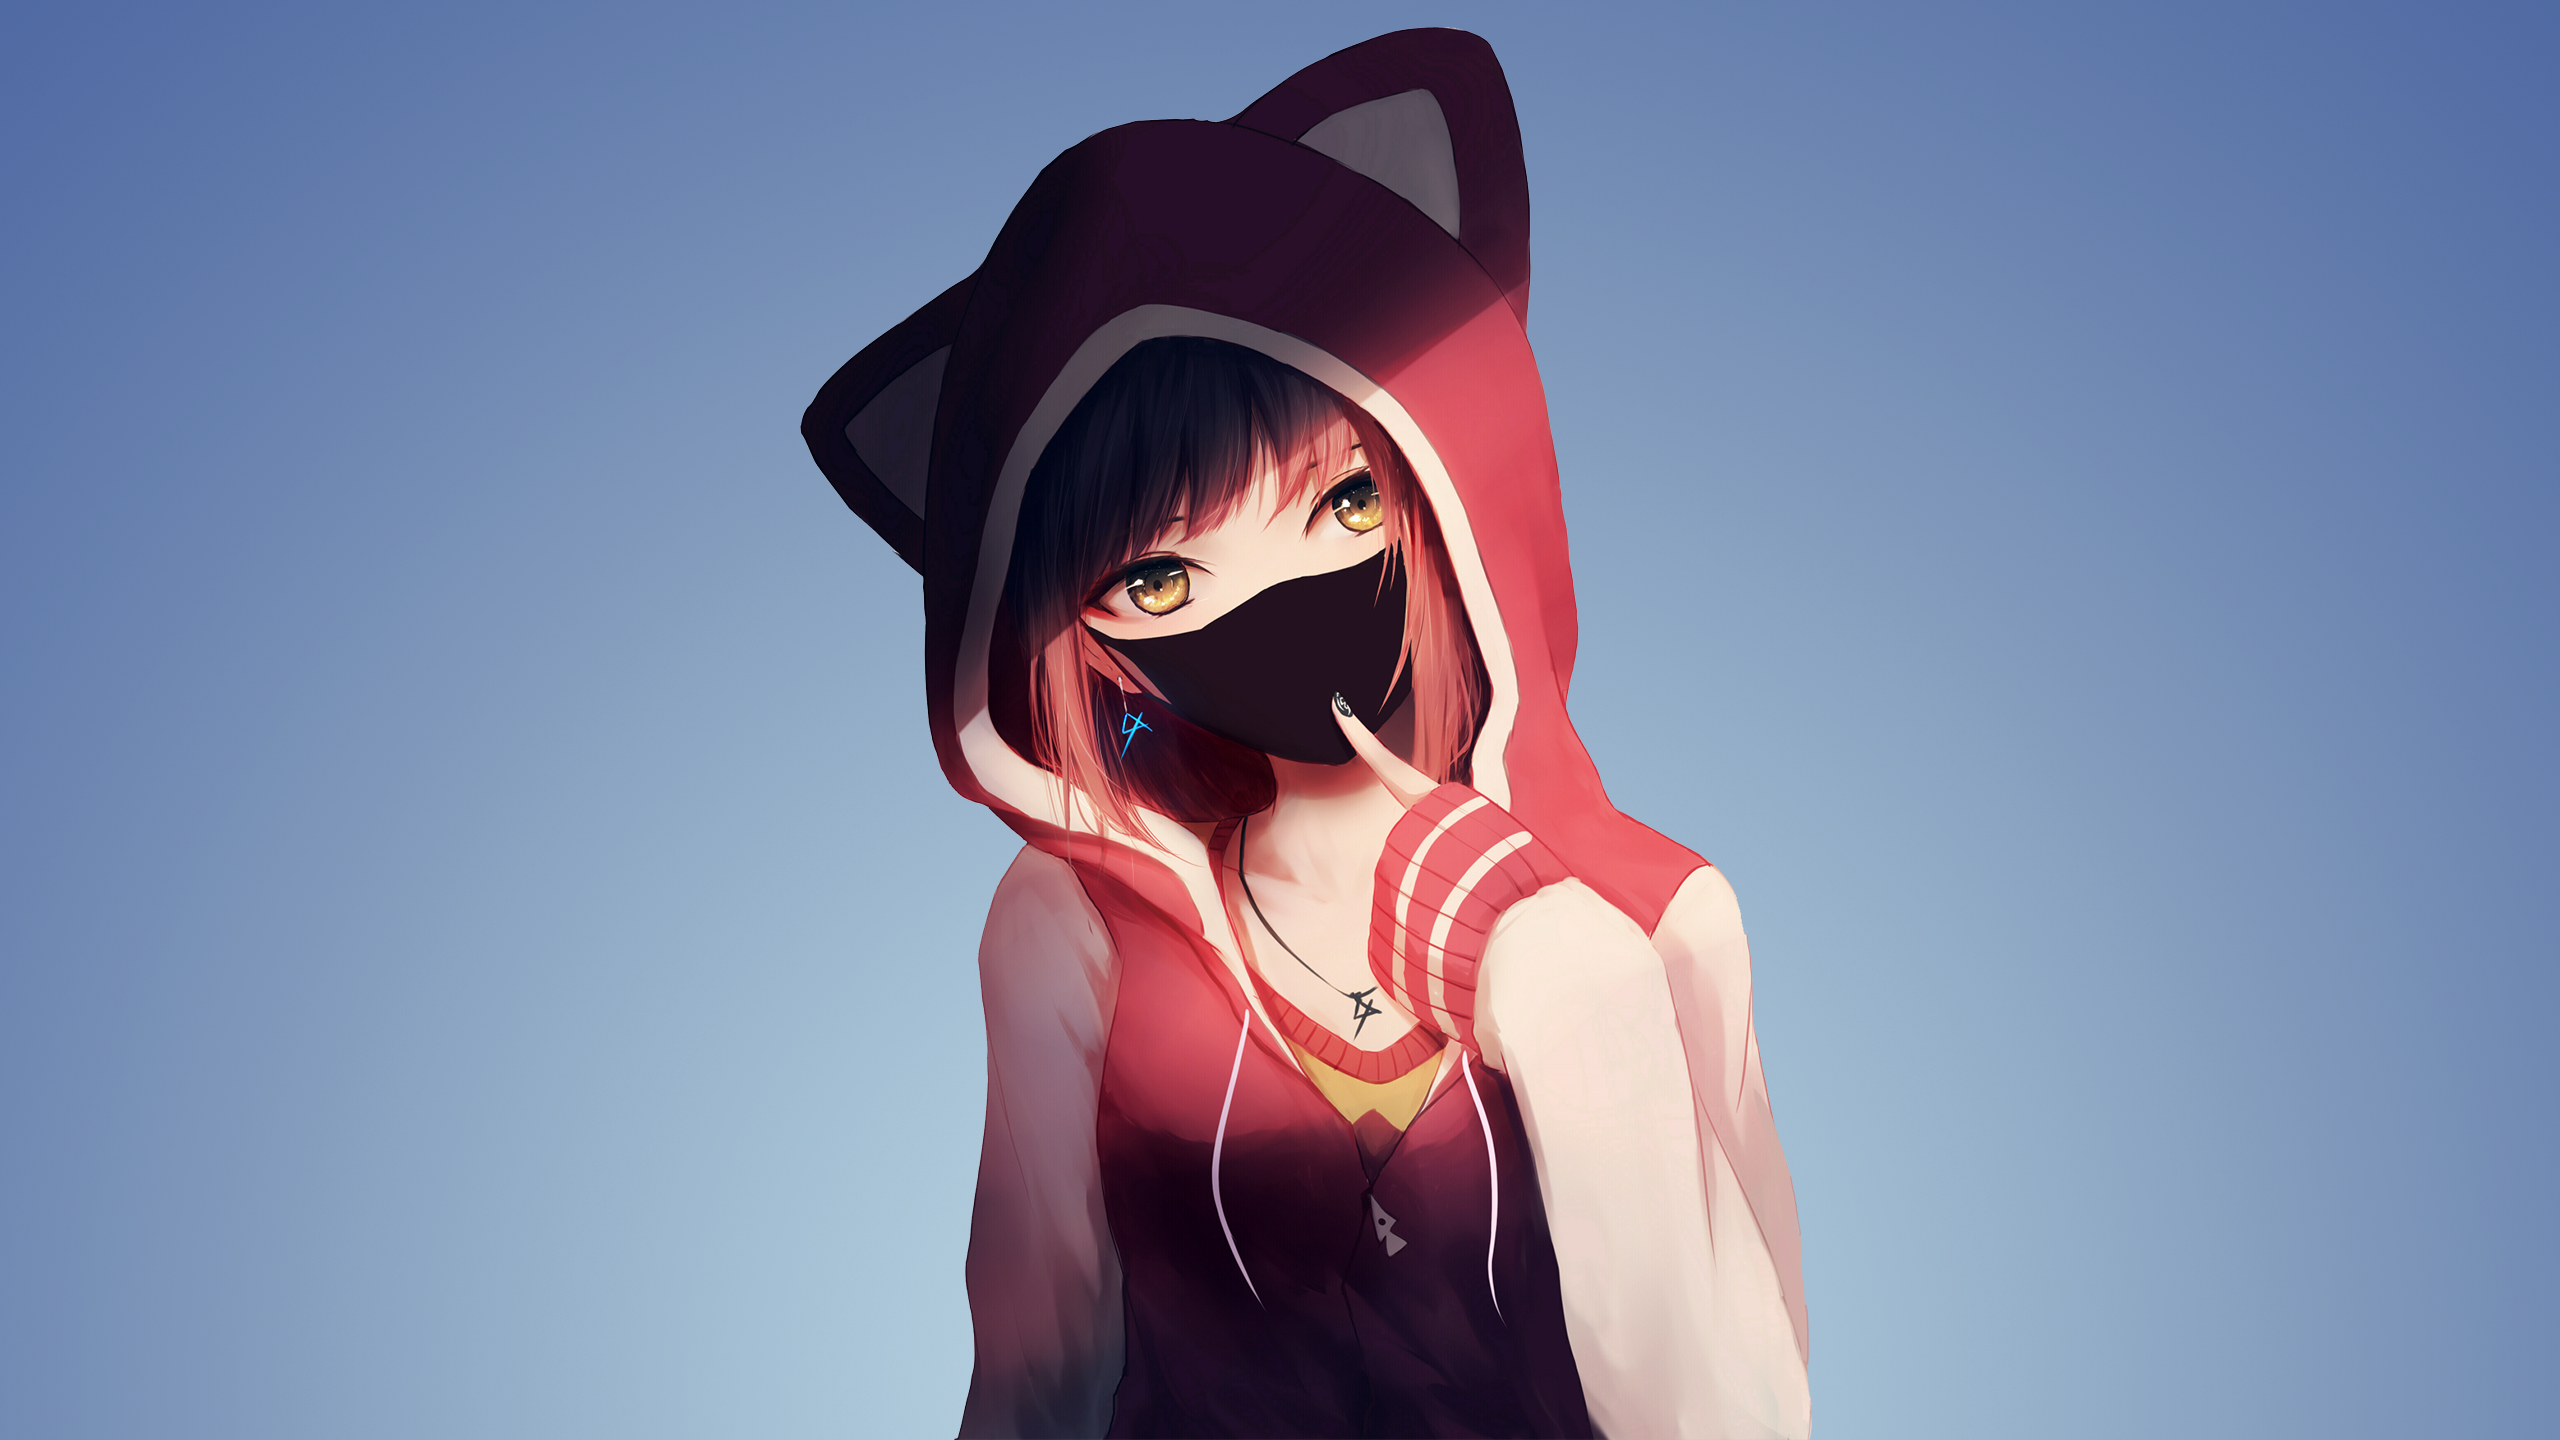 Cool Anime Girl With Mask Android Red